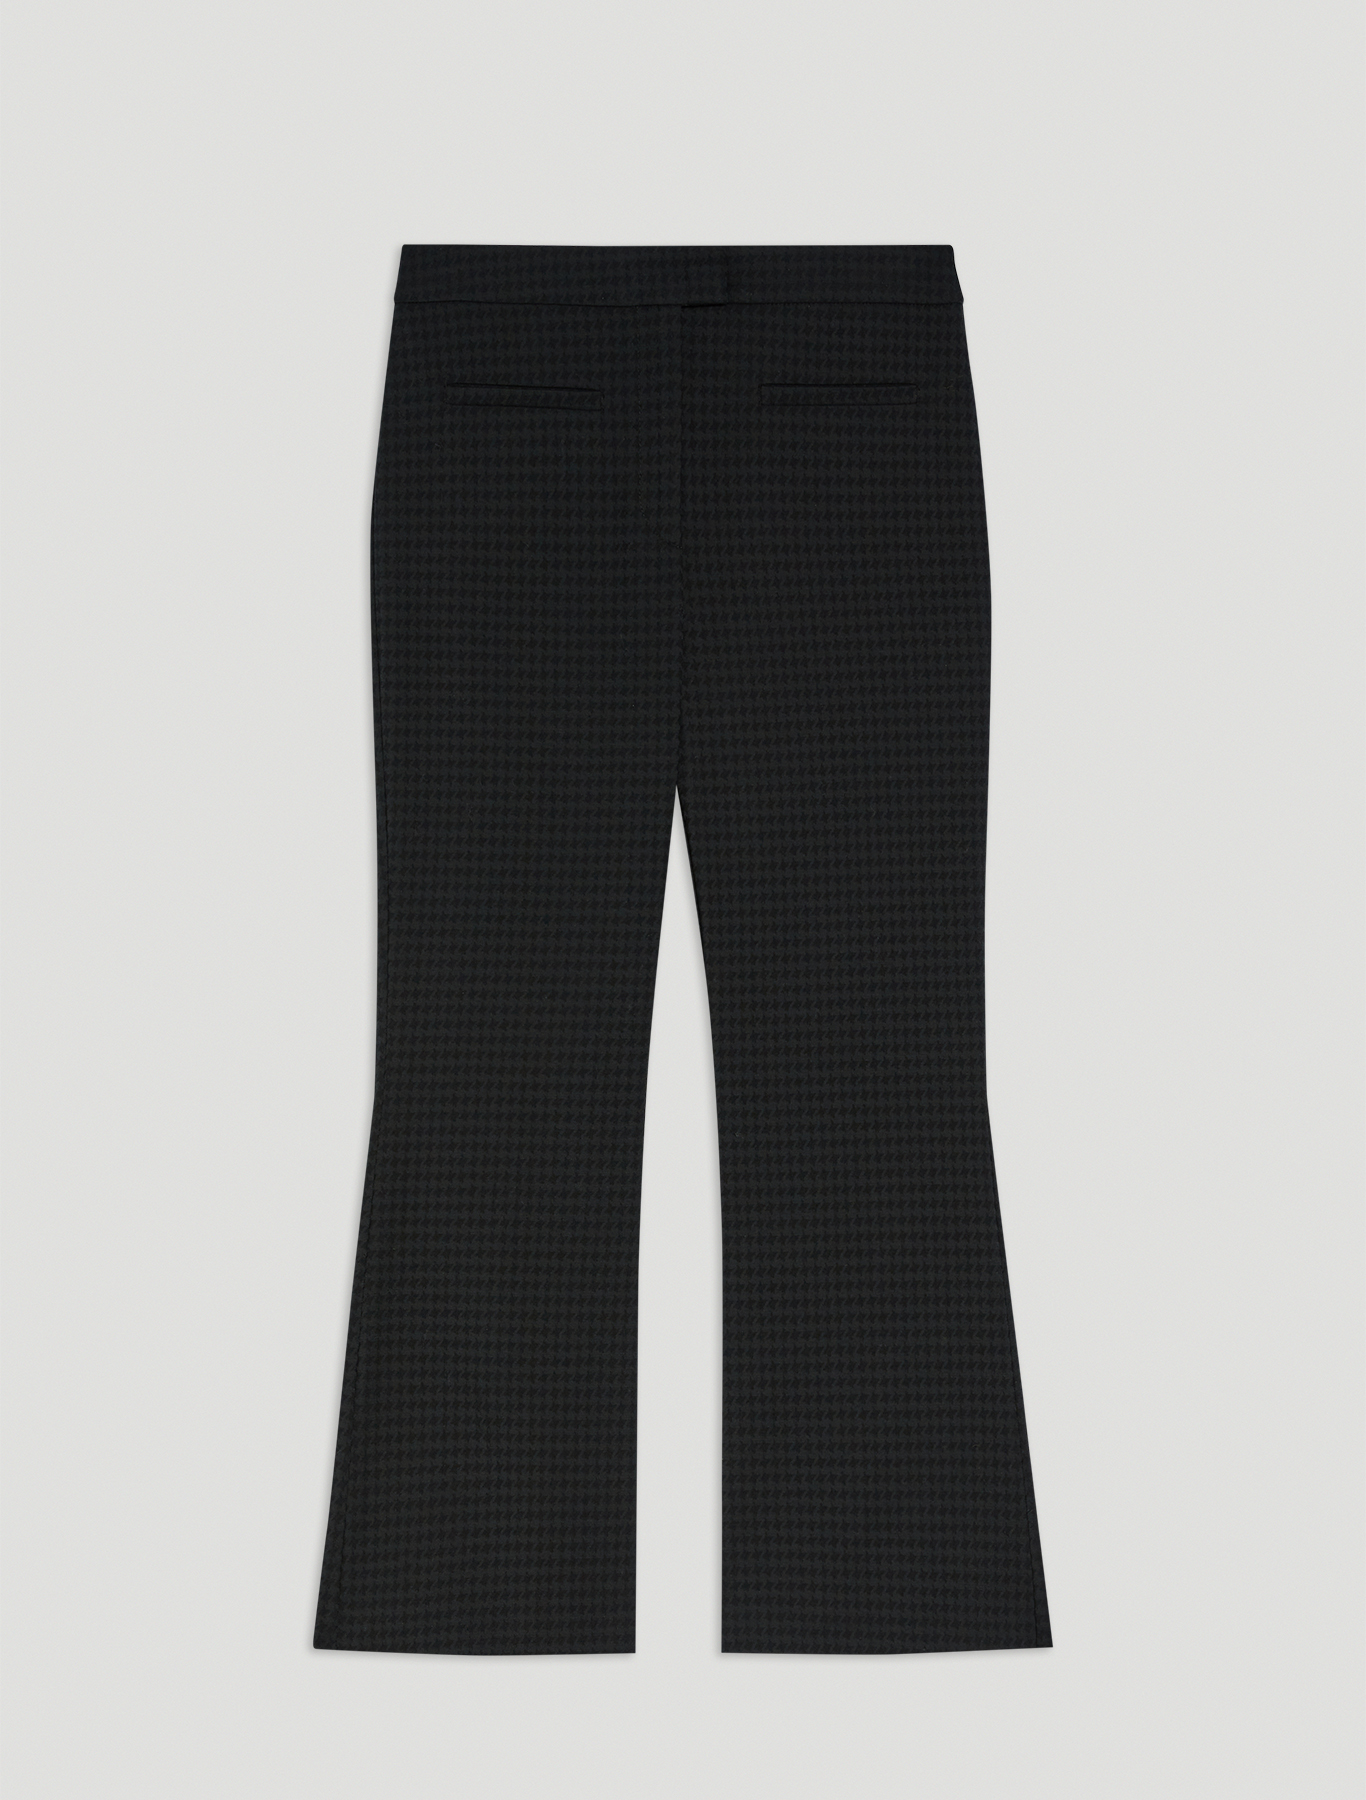 Houndstooth trousers - black - pennyblack